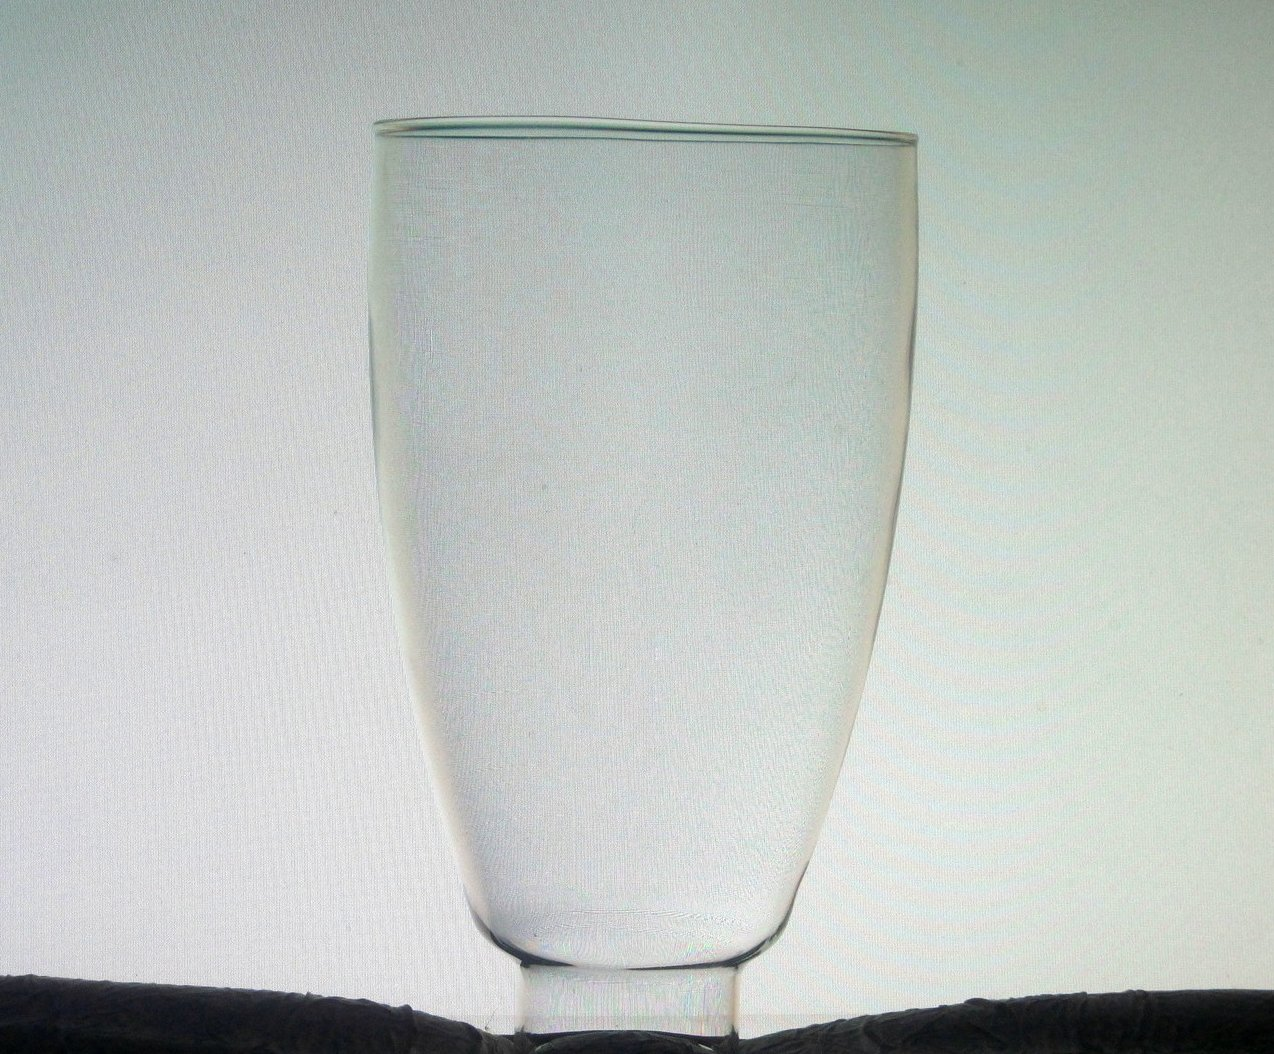 Hurricane Shade Simple Flare 1 5/8 inch fitter x 6.75 x 3.75